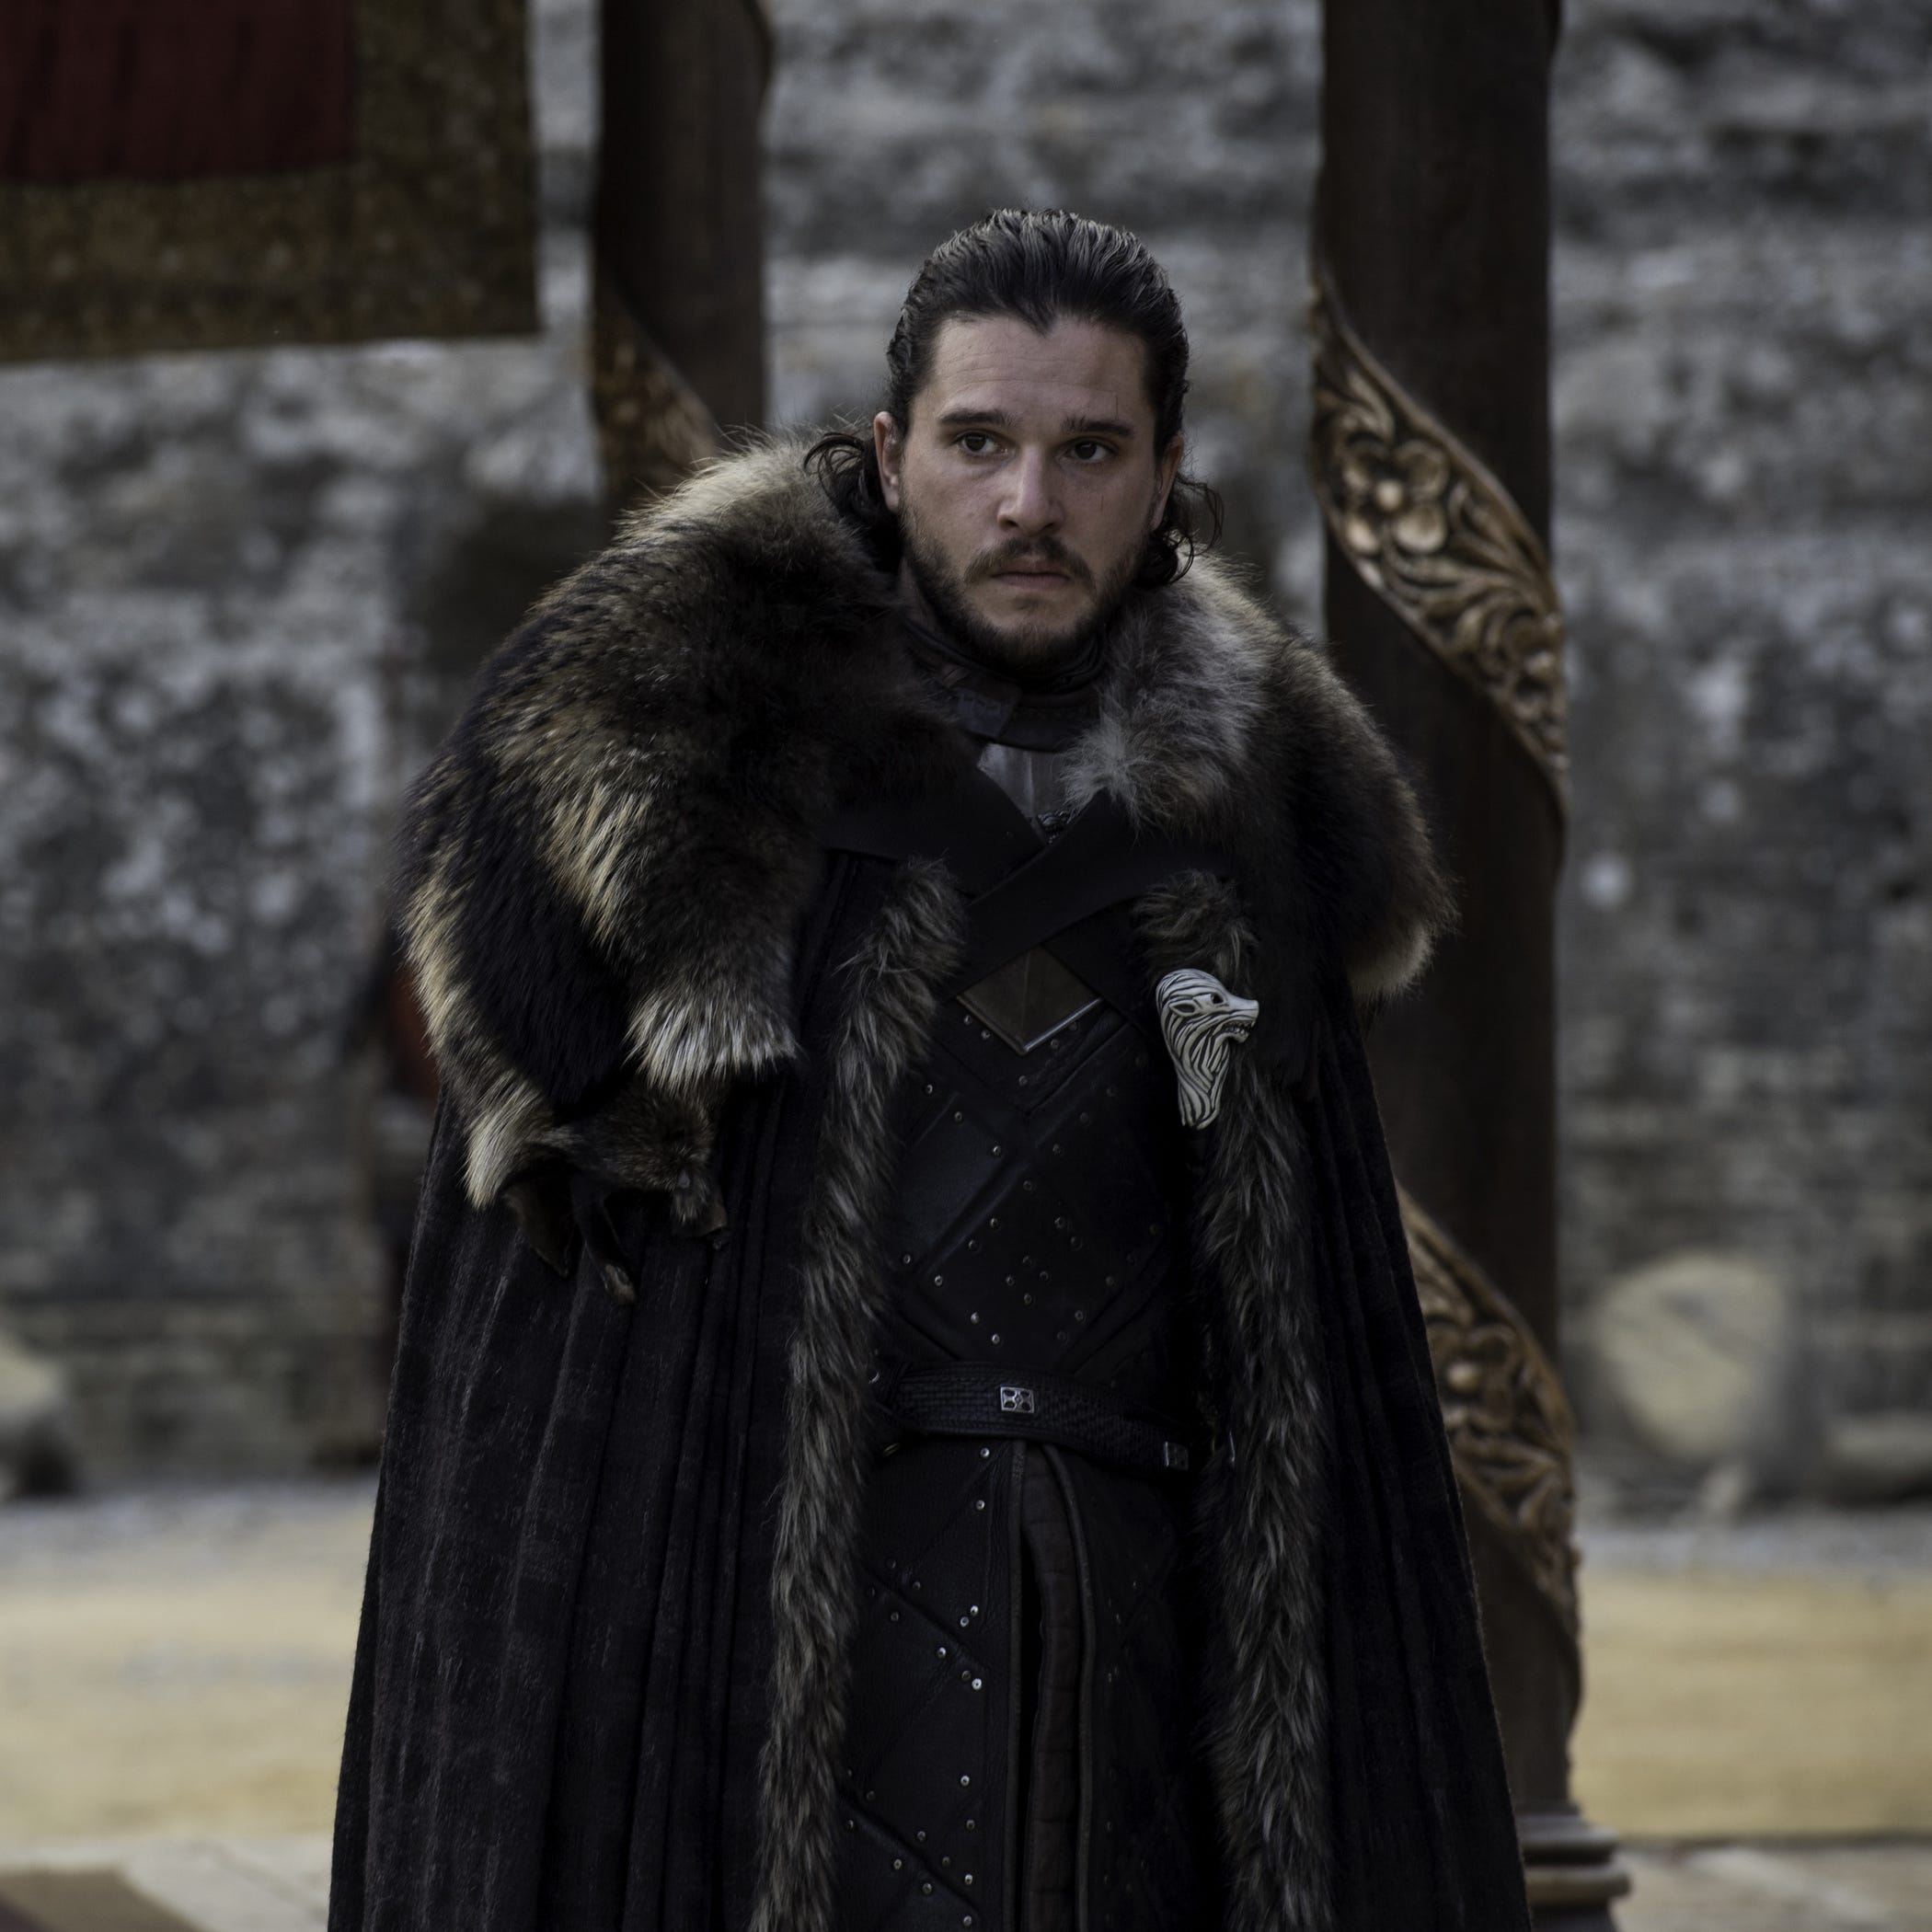 15 burning questions the final 'Game of Thrones' season needs to answer